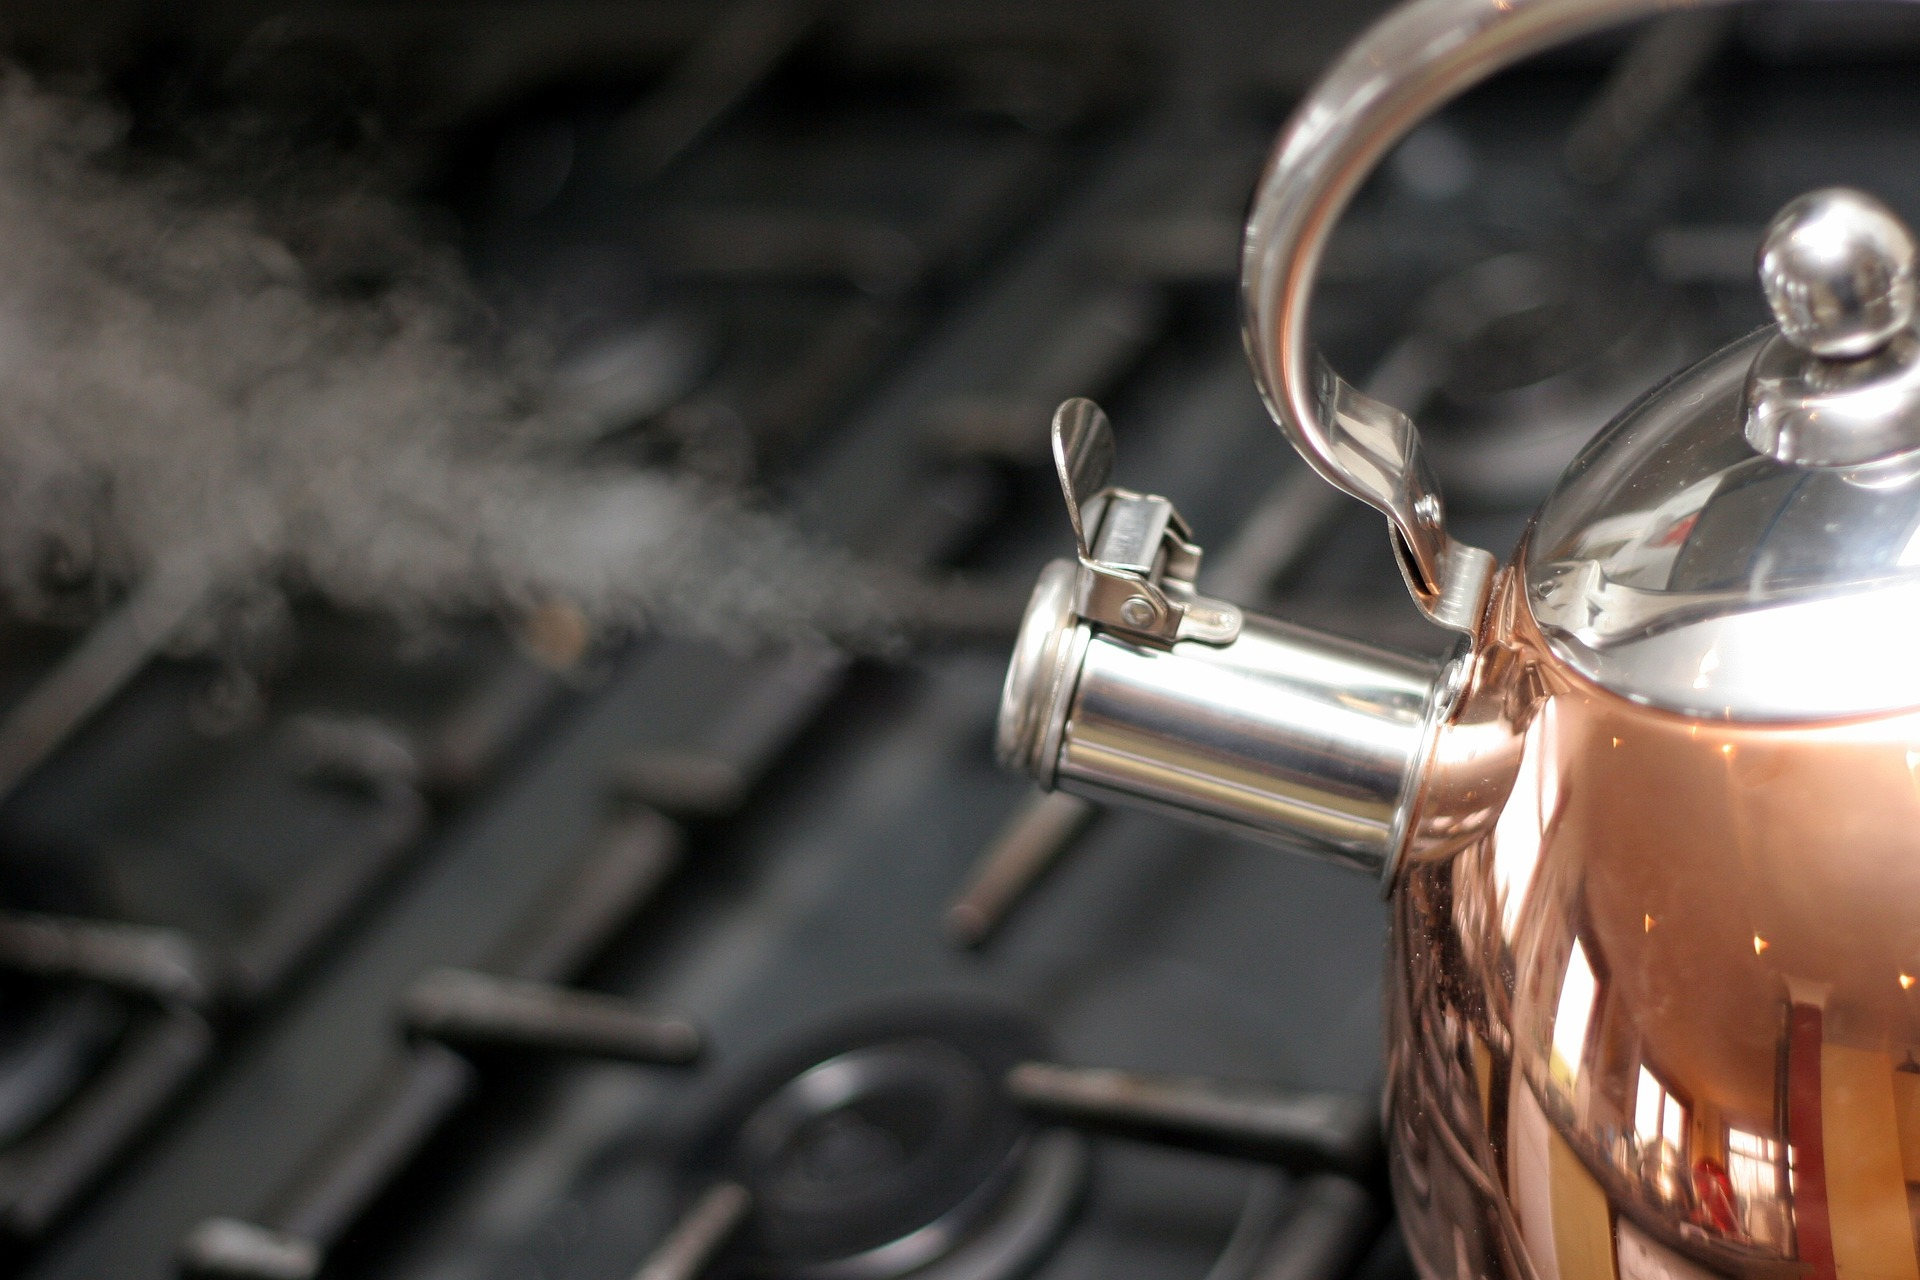 Picture of kettle boiling water